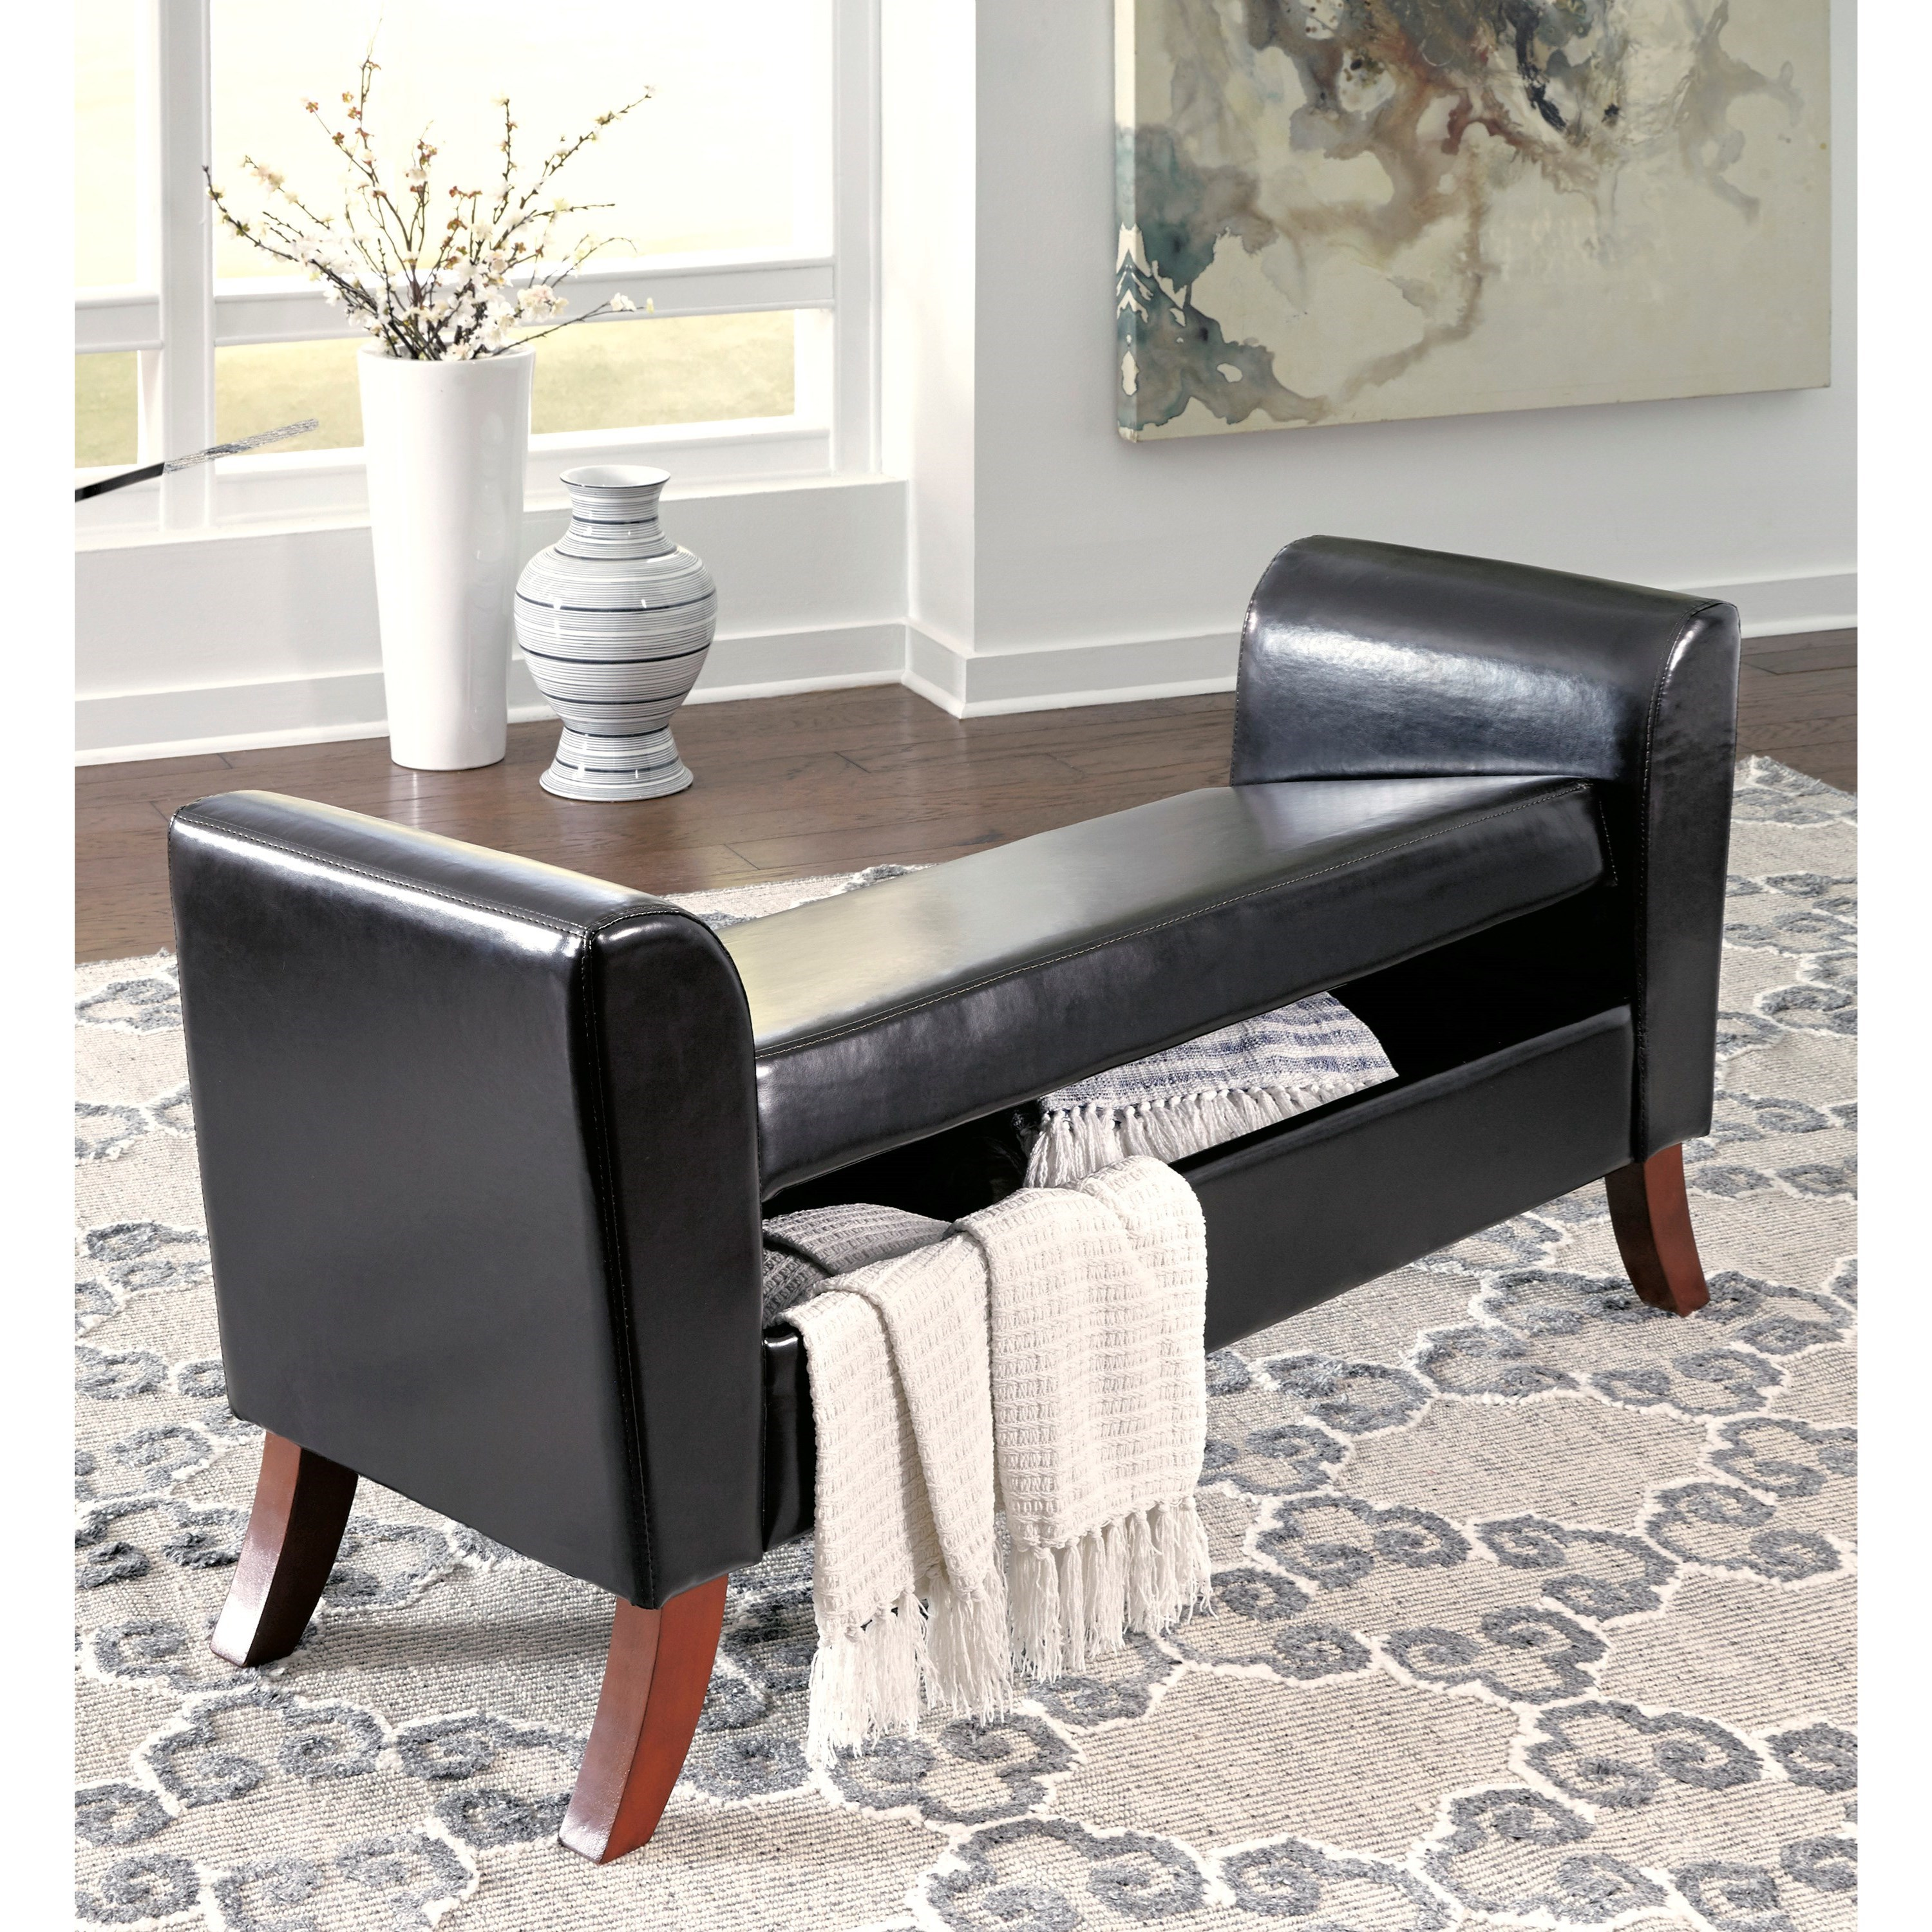 Signature design by ashley benches b010 109 upholstered - Upholstered benches for living room ...